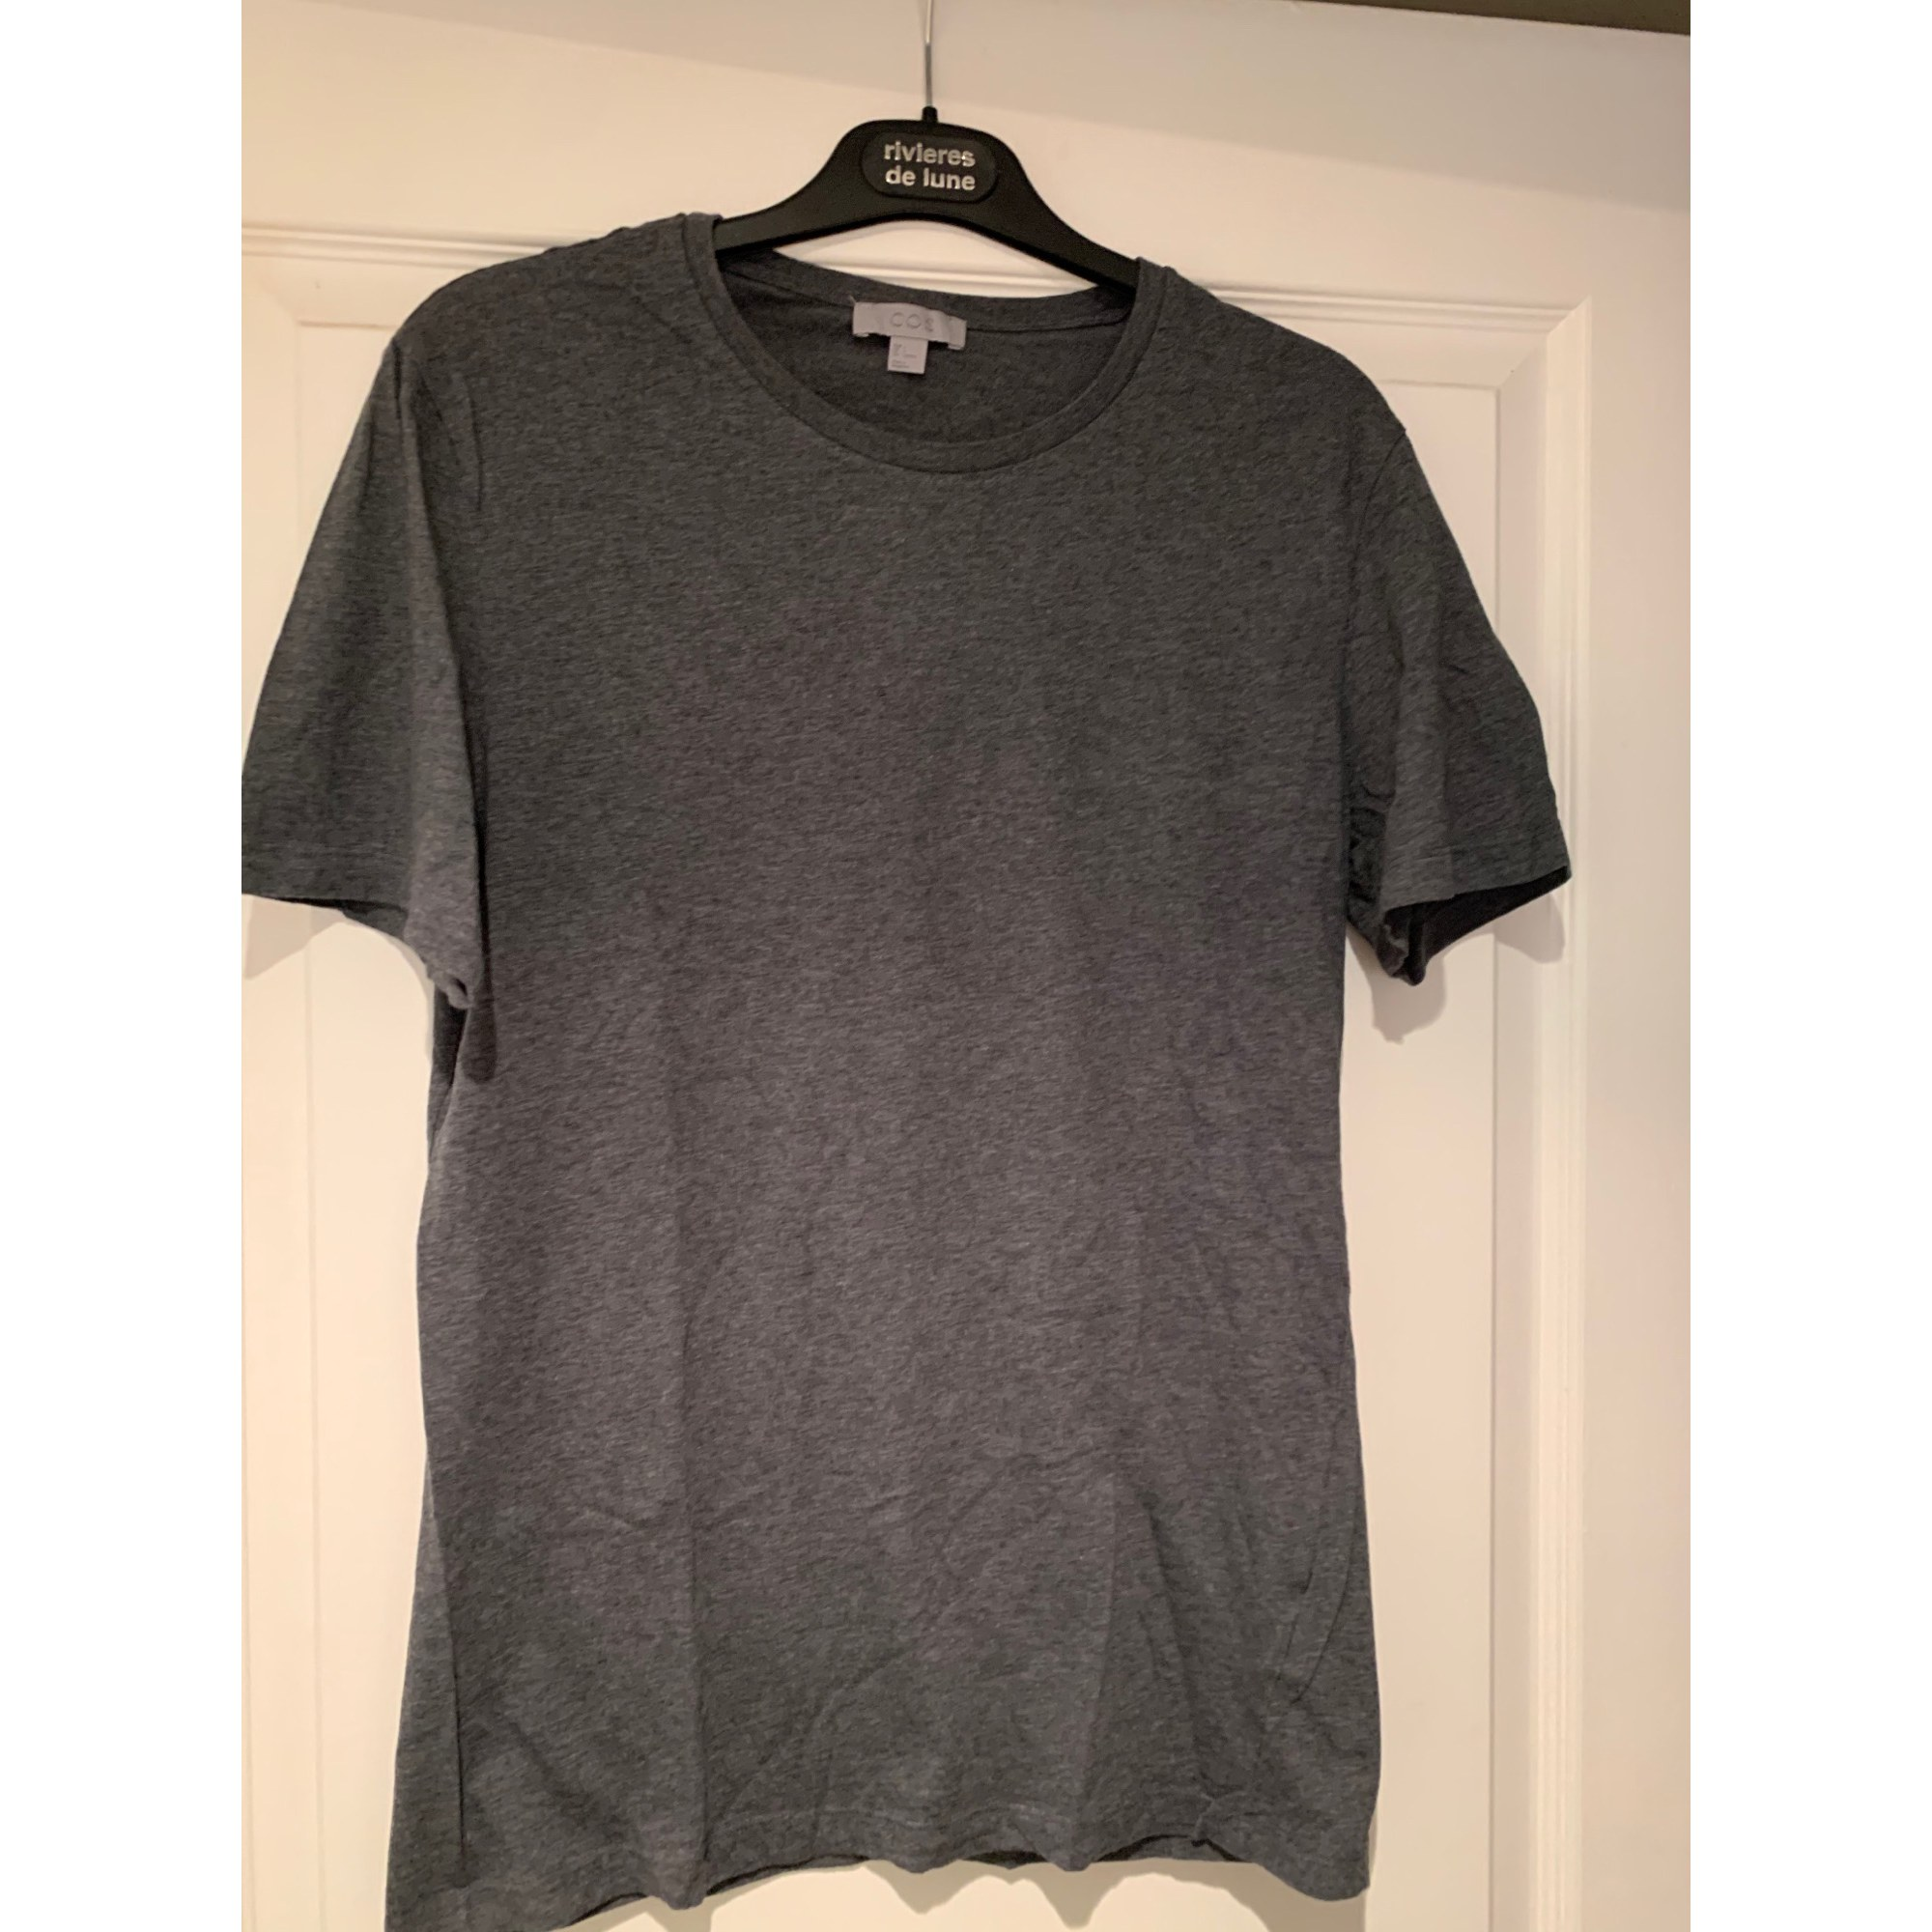 Tee-shirt COS Gris, anthracite